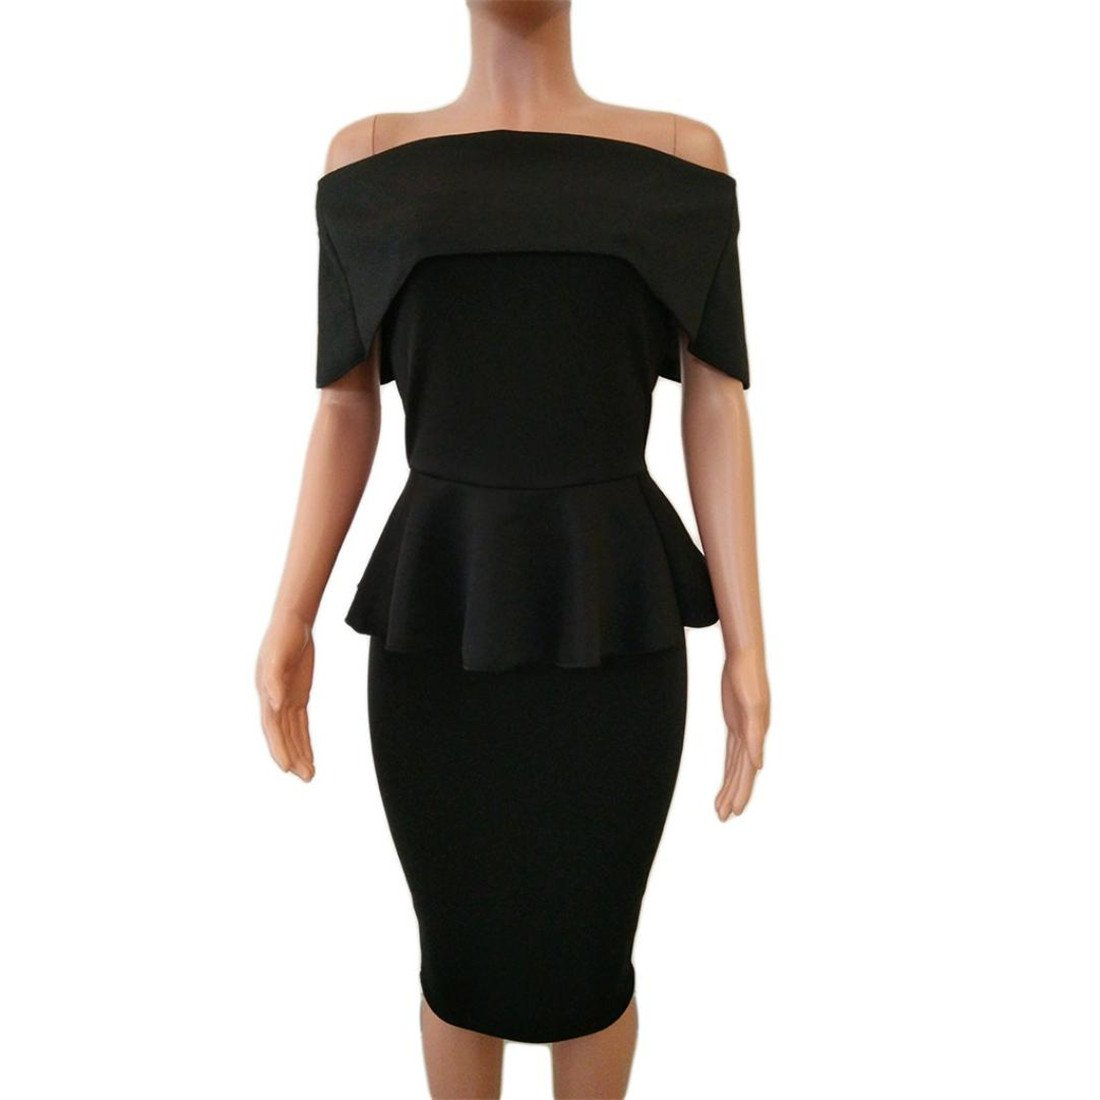 Womens Business Dresses,Moonuy Girl Work Formal Office Bodycon Off Shoulder Long Sleeve Evening Party Dress For Ladies Fashion Spring Autumn Summer Casual ...